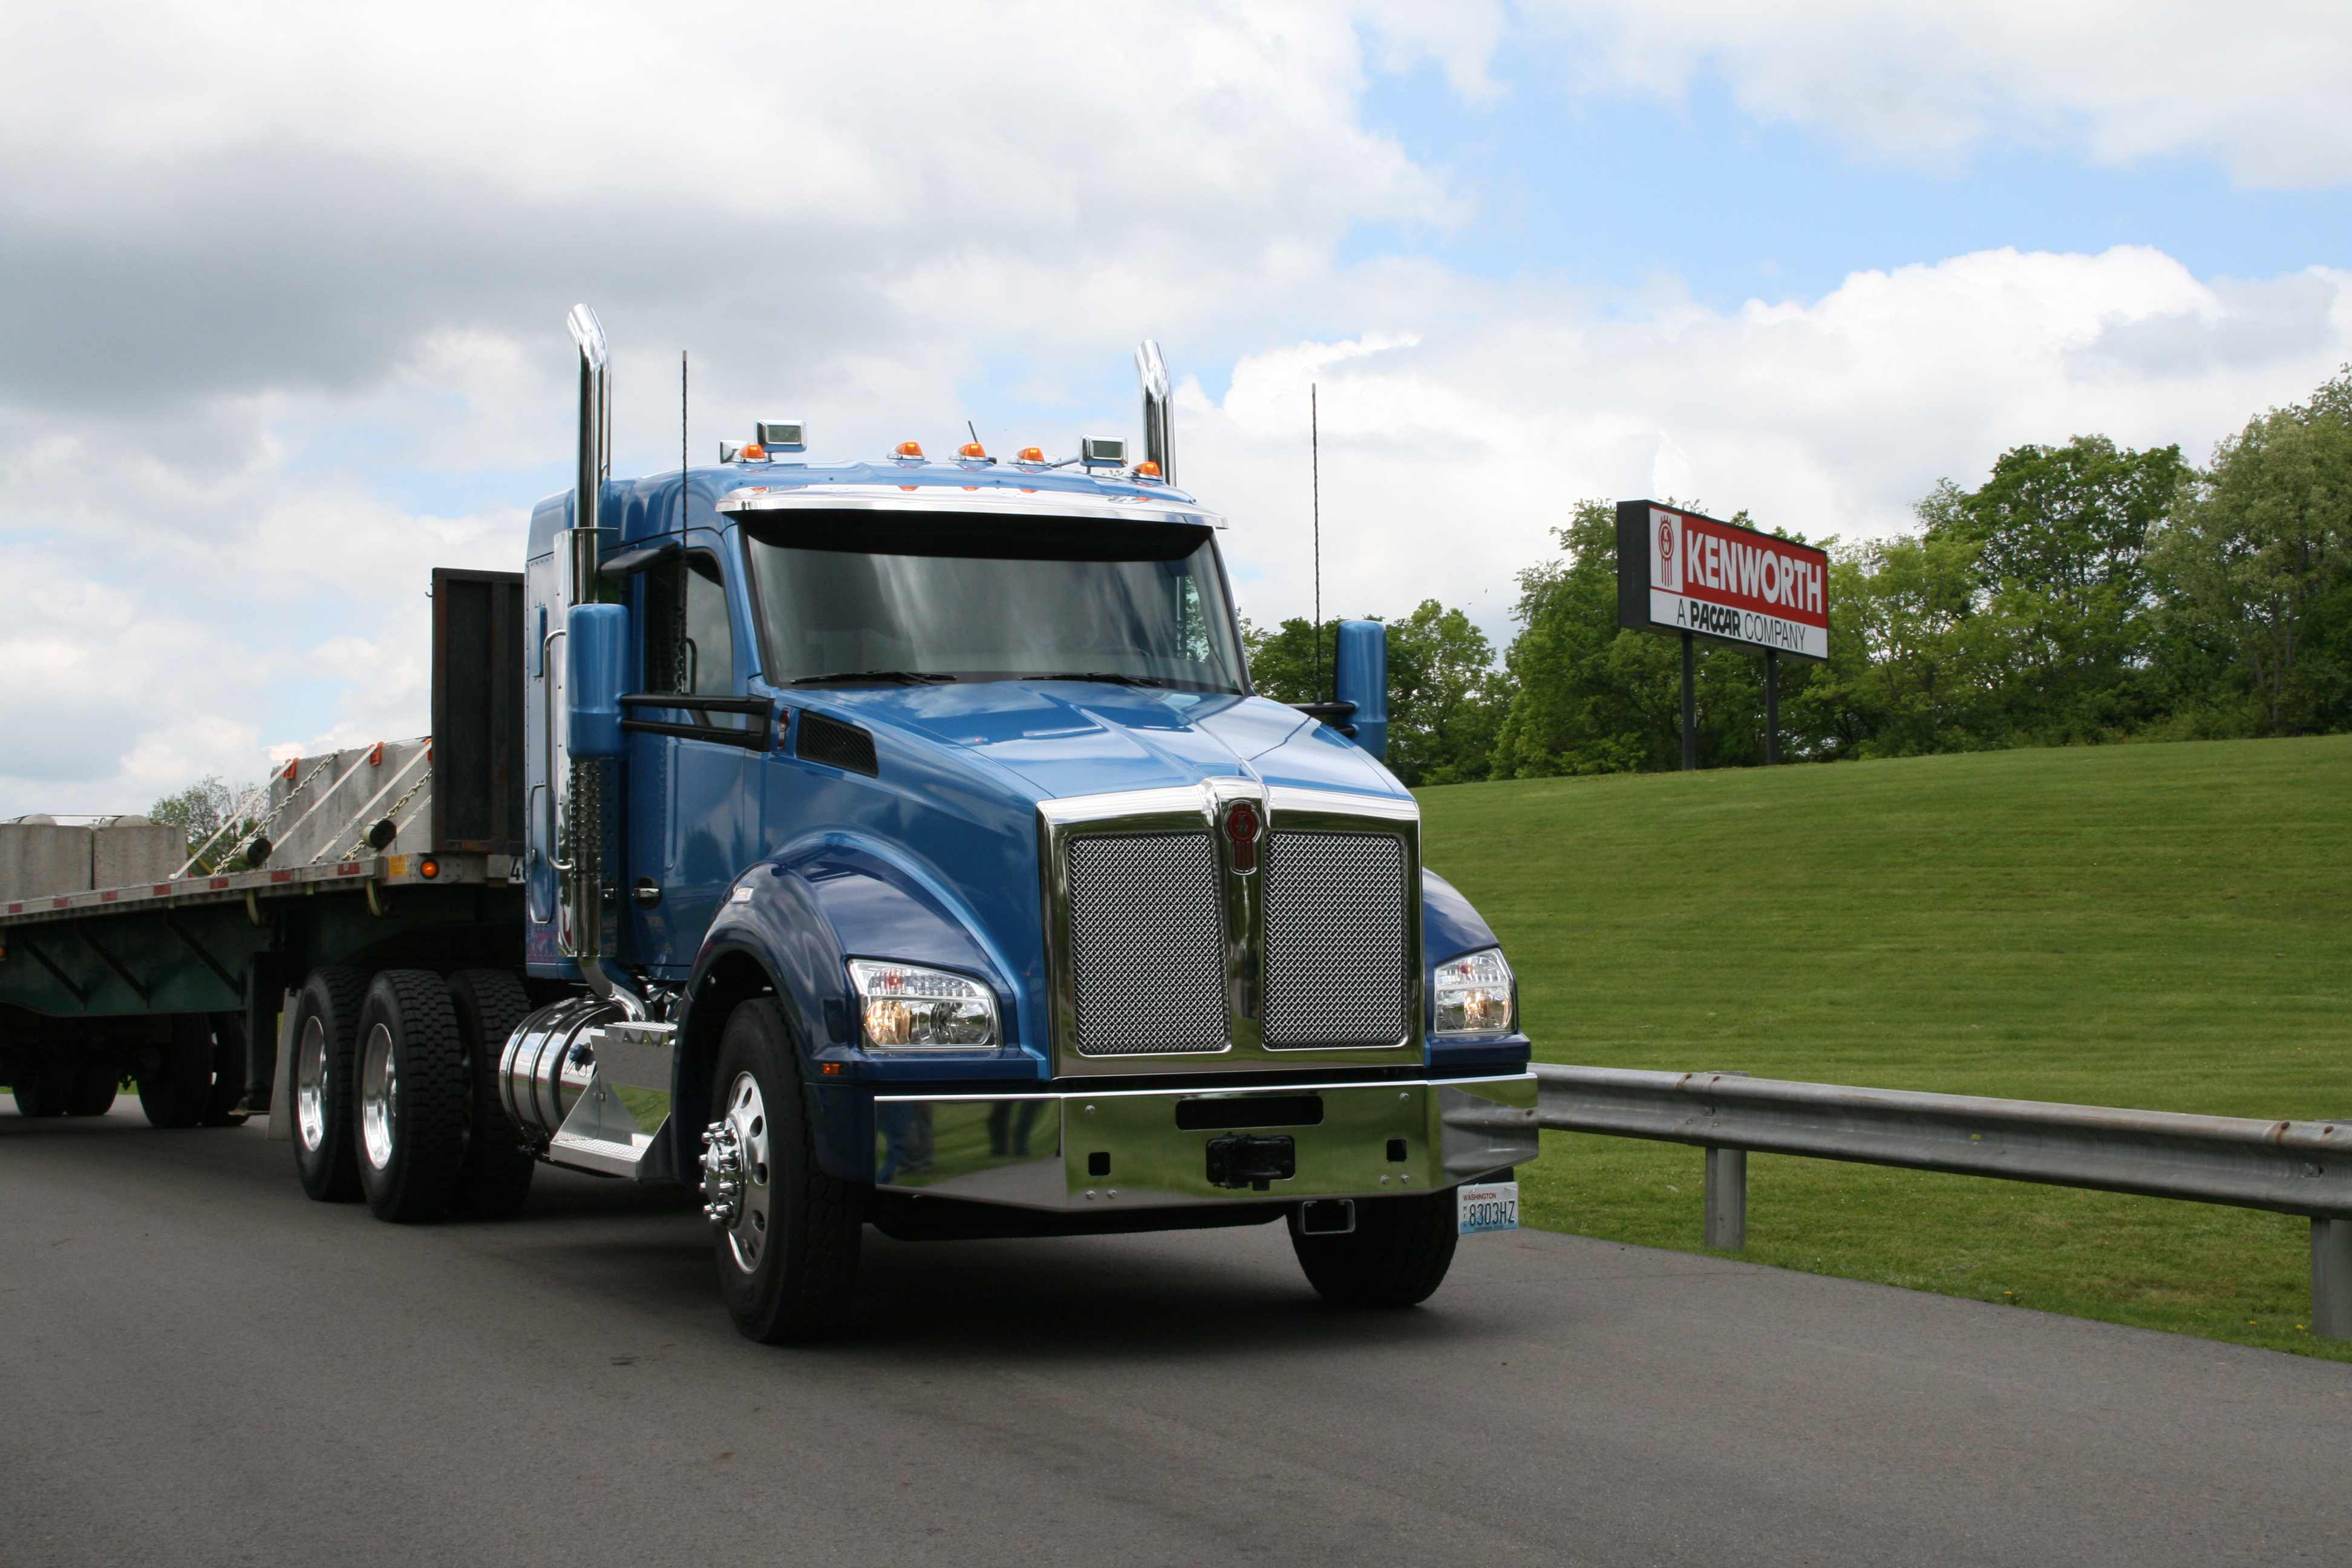 The Kenworth T880 made available for test drives featured Meritor axles in the front and rear.